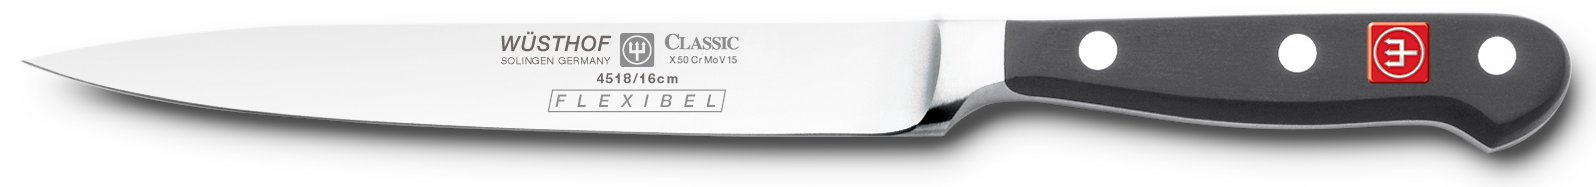 Wusthof Classic 6-Inch Flexible Fish Fillet by Wüsthof (Image #1)